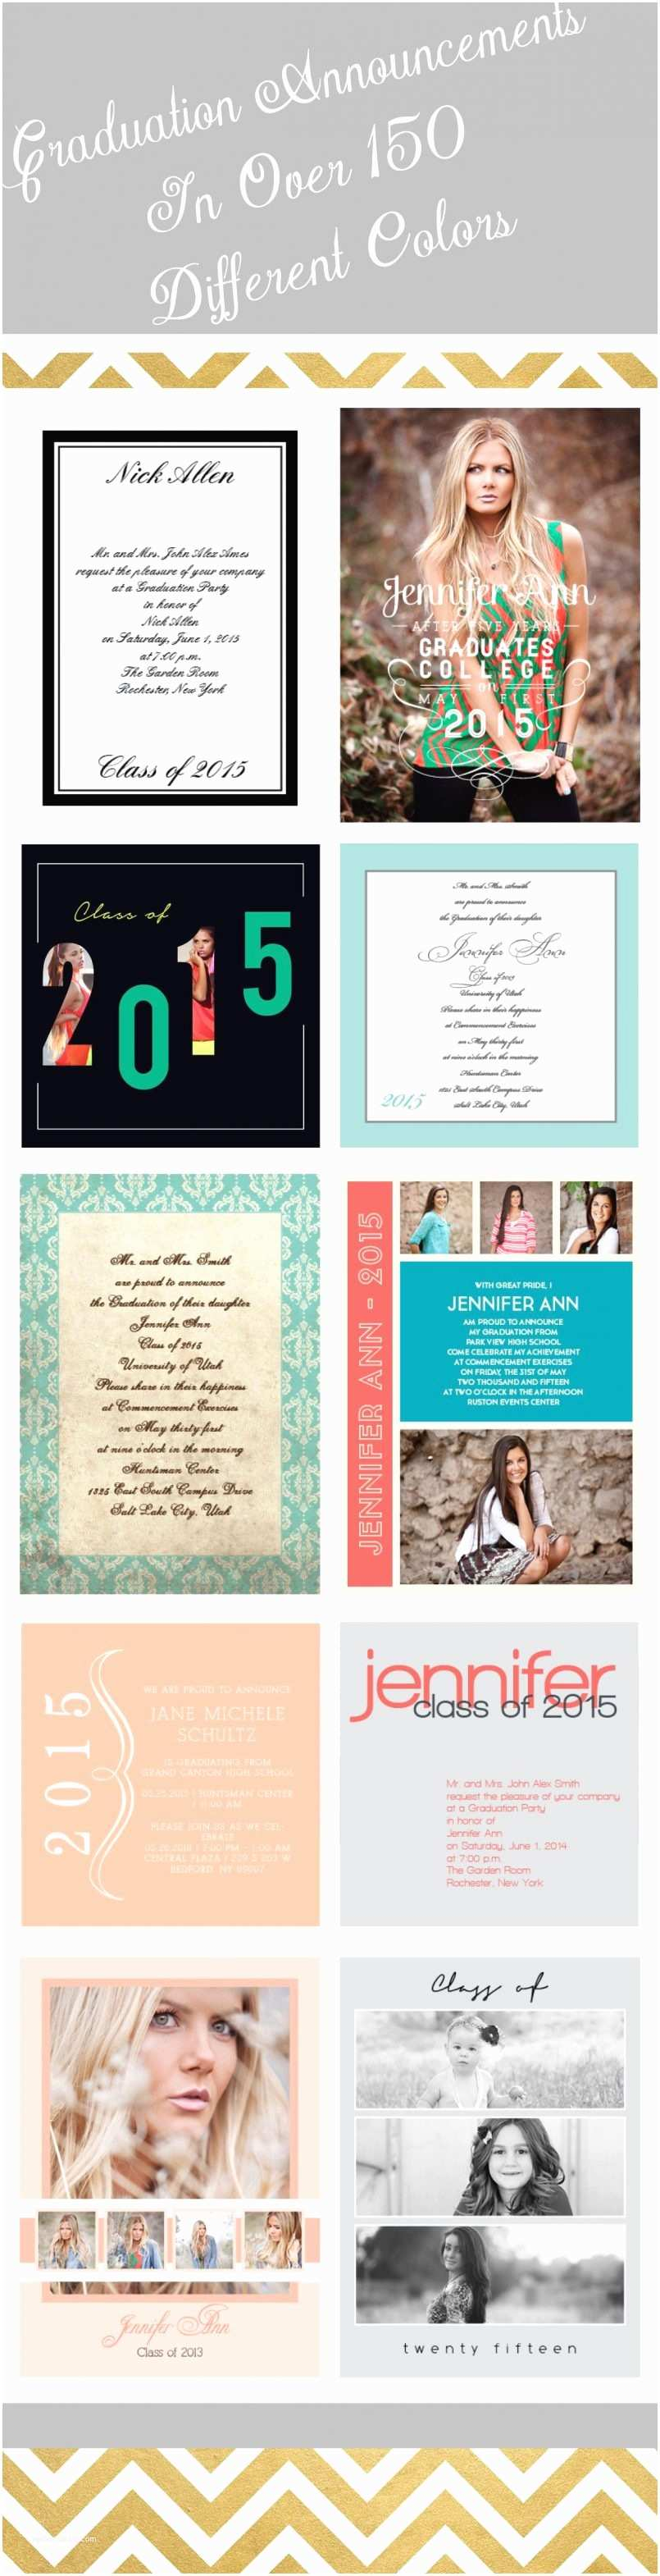 Make Your Own Graduation Invitations Designs Design Your Own Graduation Invitations Li and